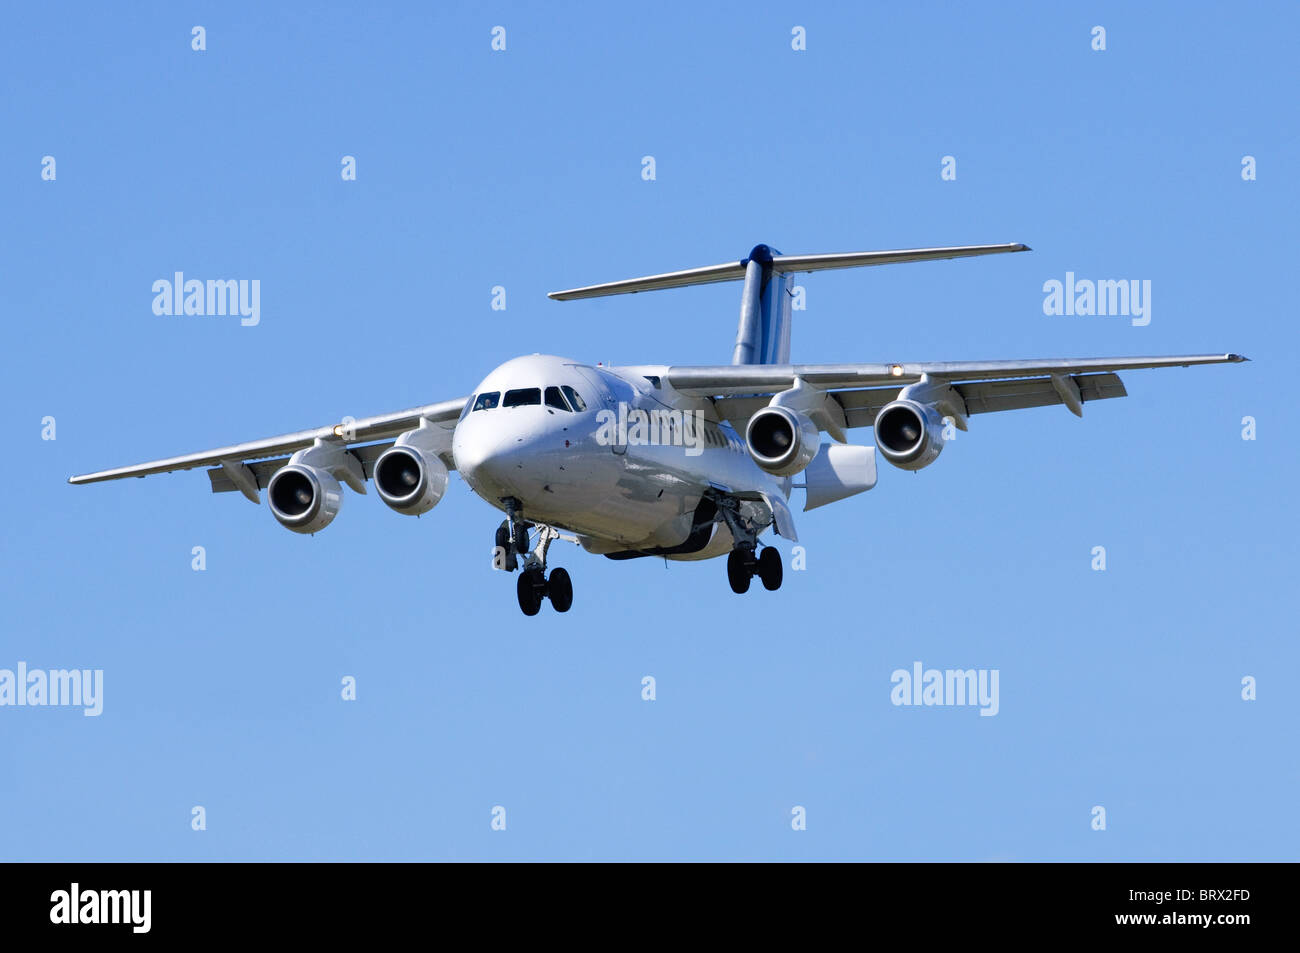 British Aerospace BAe 146-200 operated by BAE Systems on approach for landing at London Farnborough Airport - Stock Image